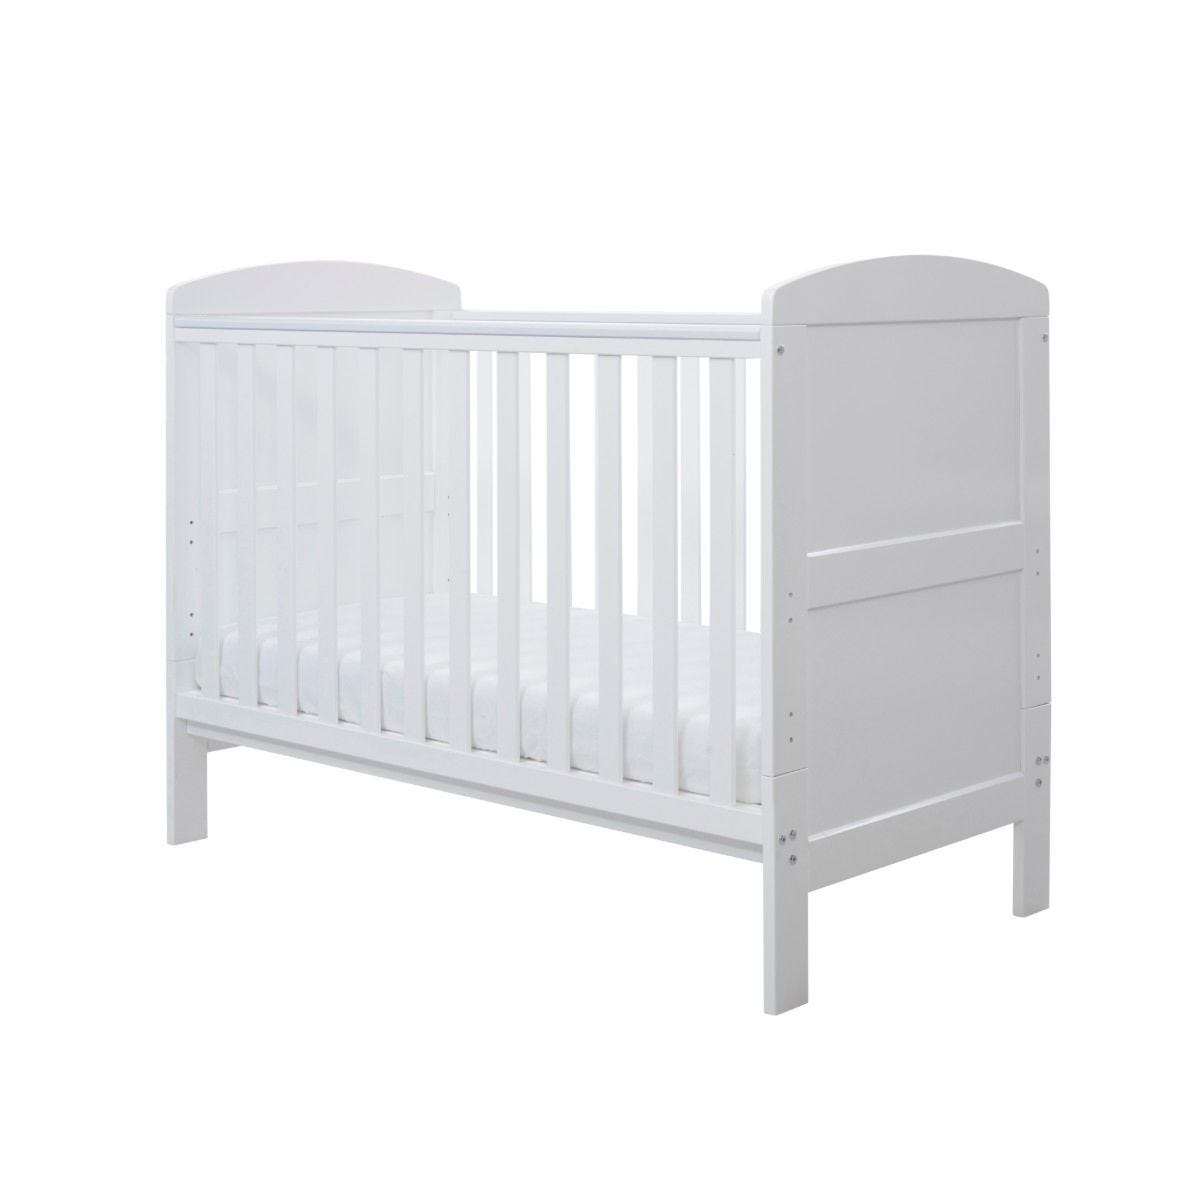 Ickle Bubba Coleby Mini Cot Bed and Pocket Sprung Mattress White